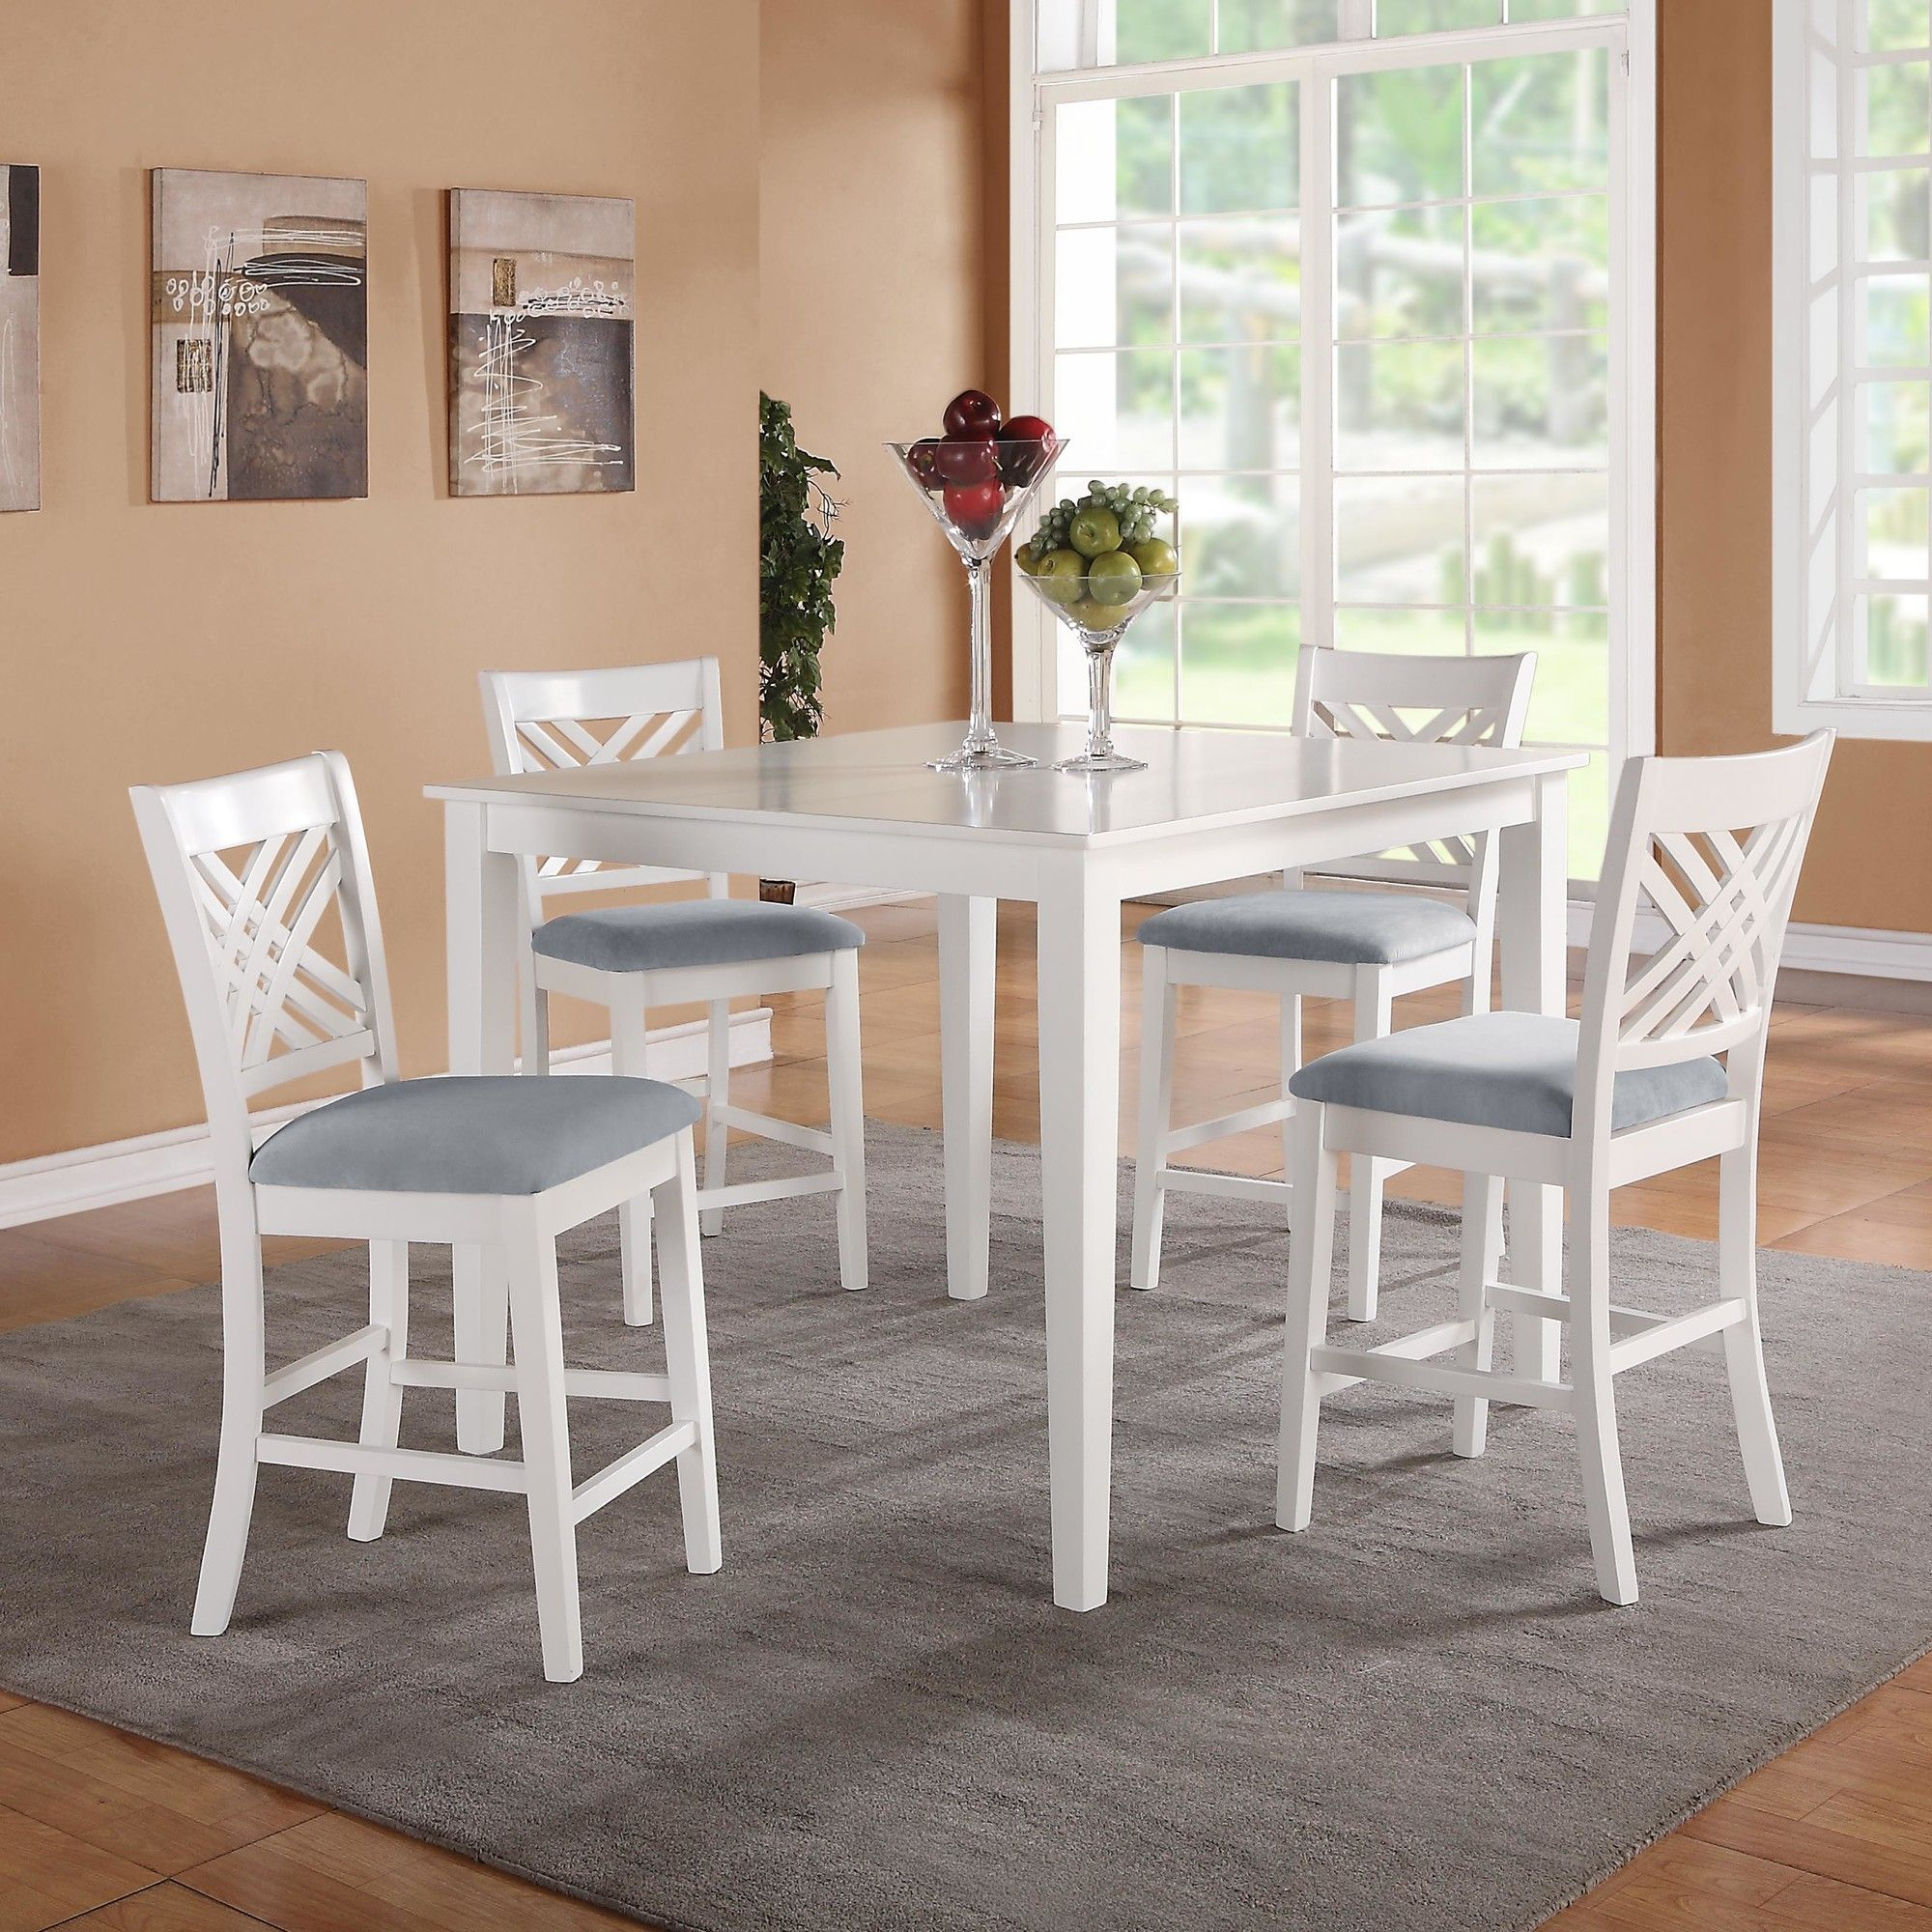 Standard Furniture Brooklyn 5 Piece Counter Height Dining Table Set